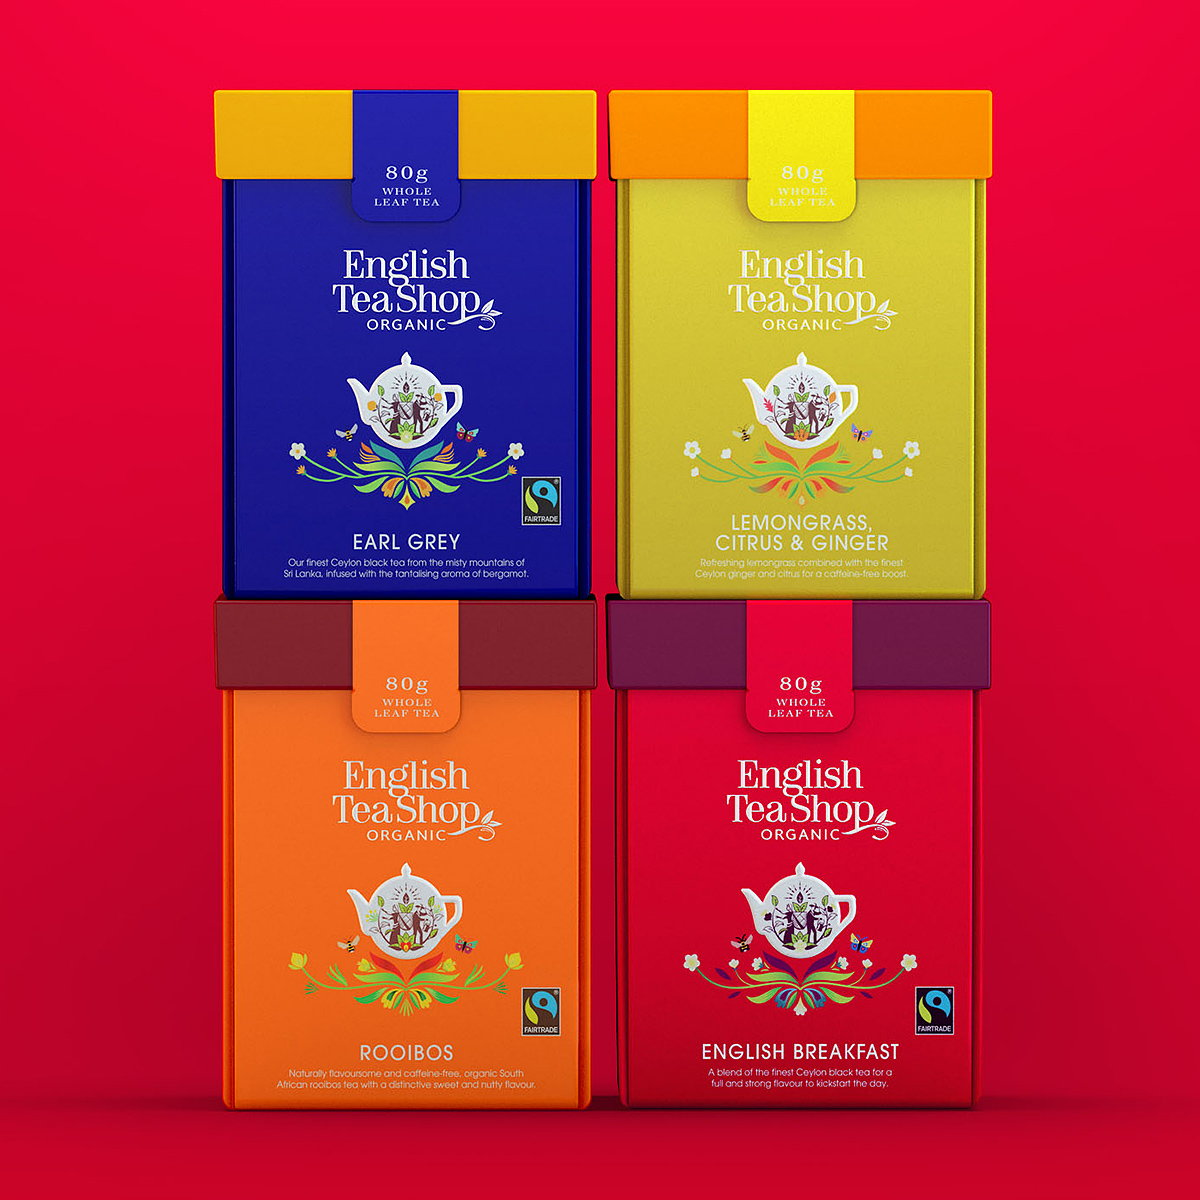 Echo Collaborates with English Tea Shop to Create 100 Percent Compostable Packaging